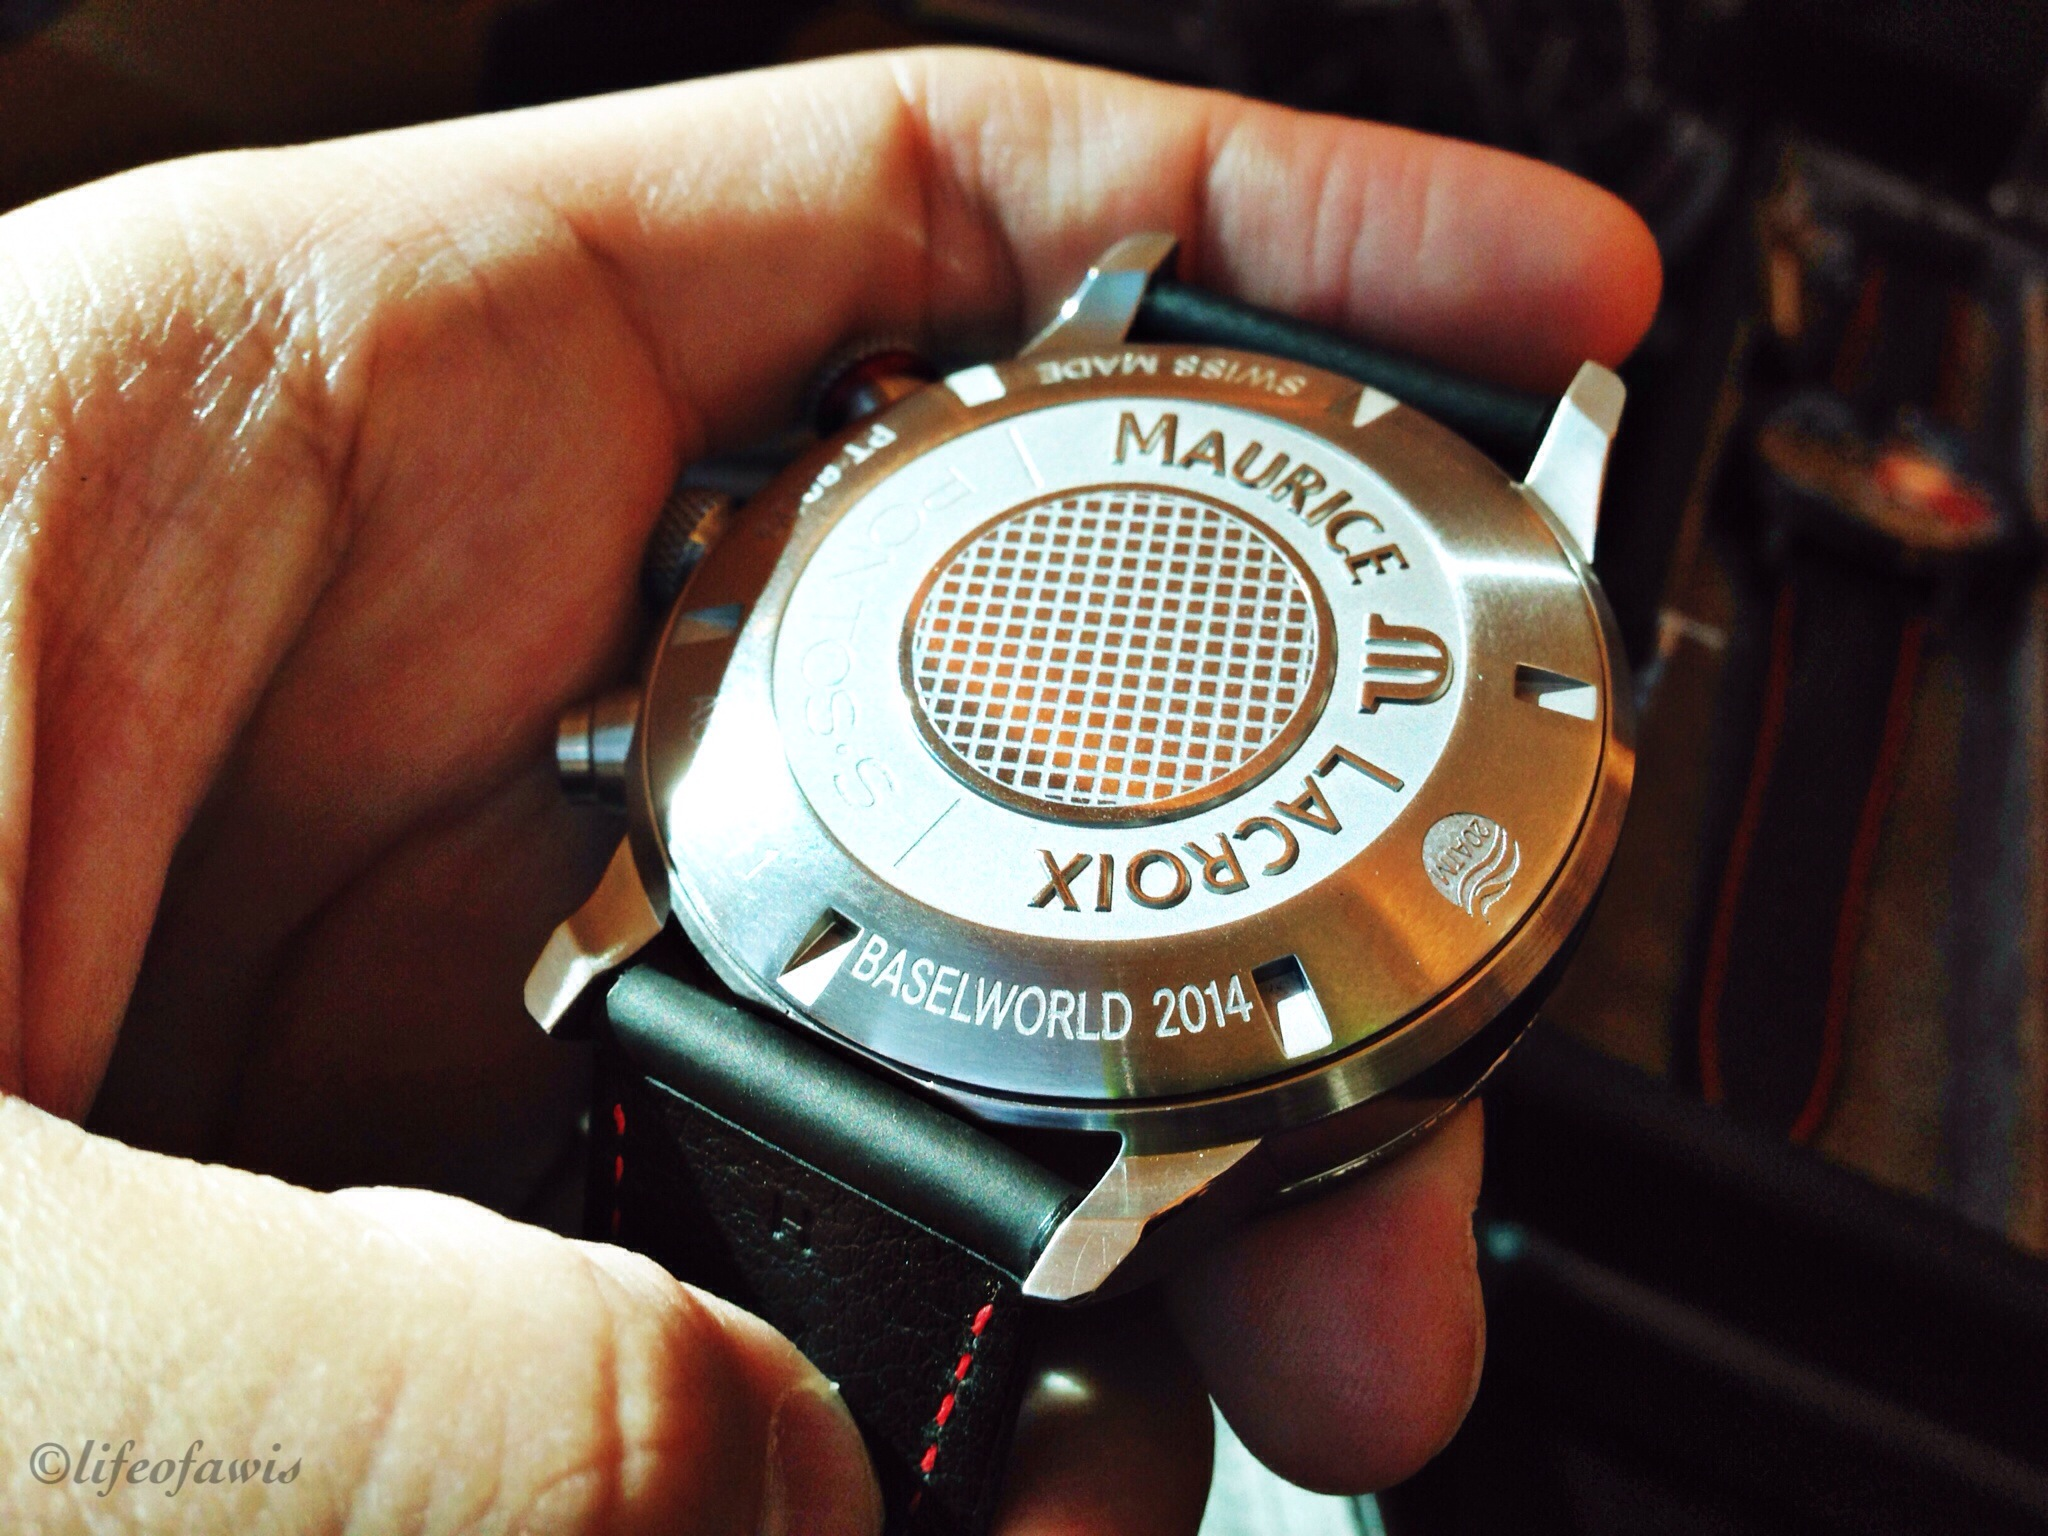 Prototype watches straight from Baselworld 2014.